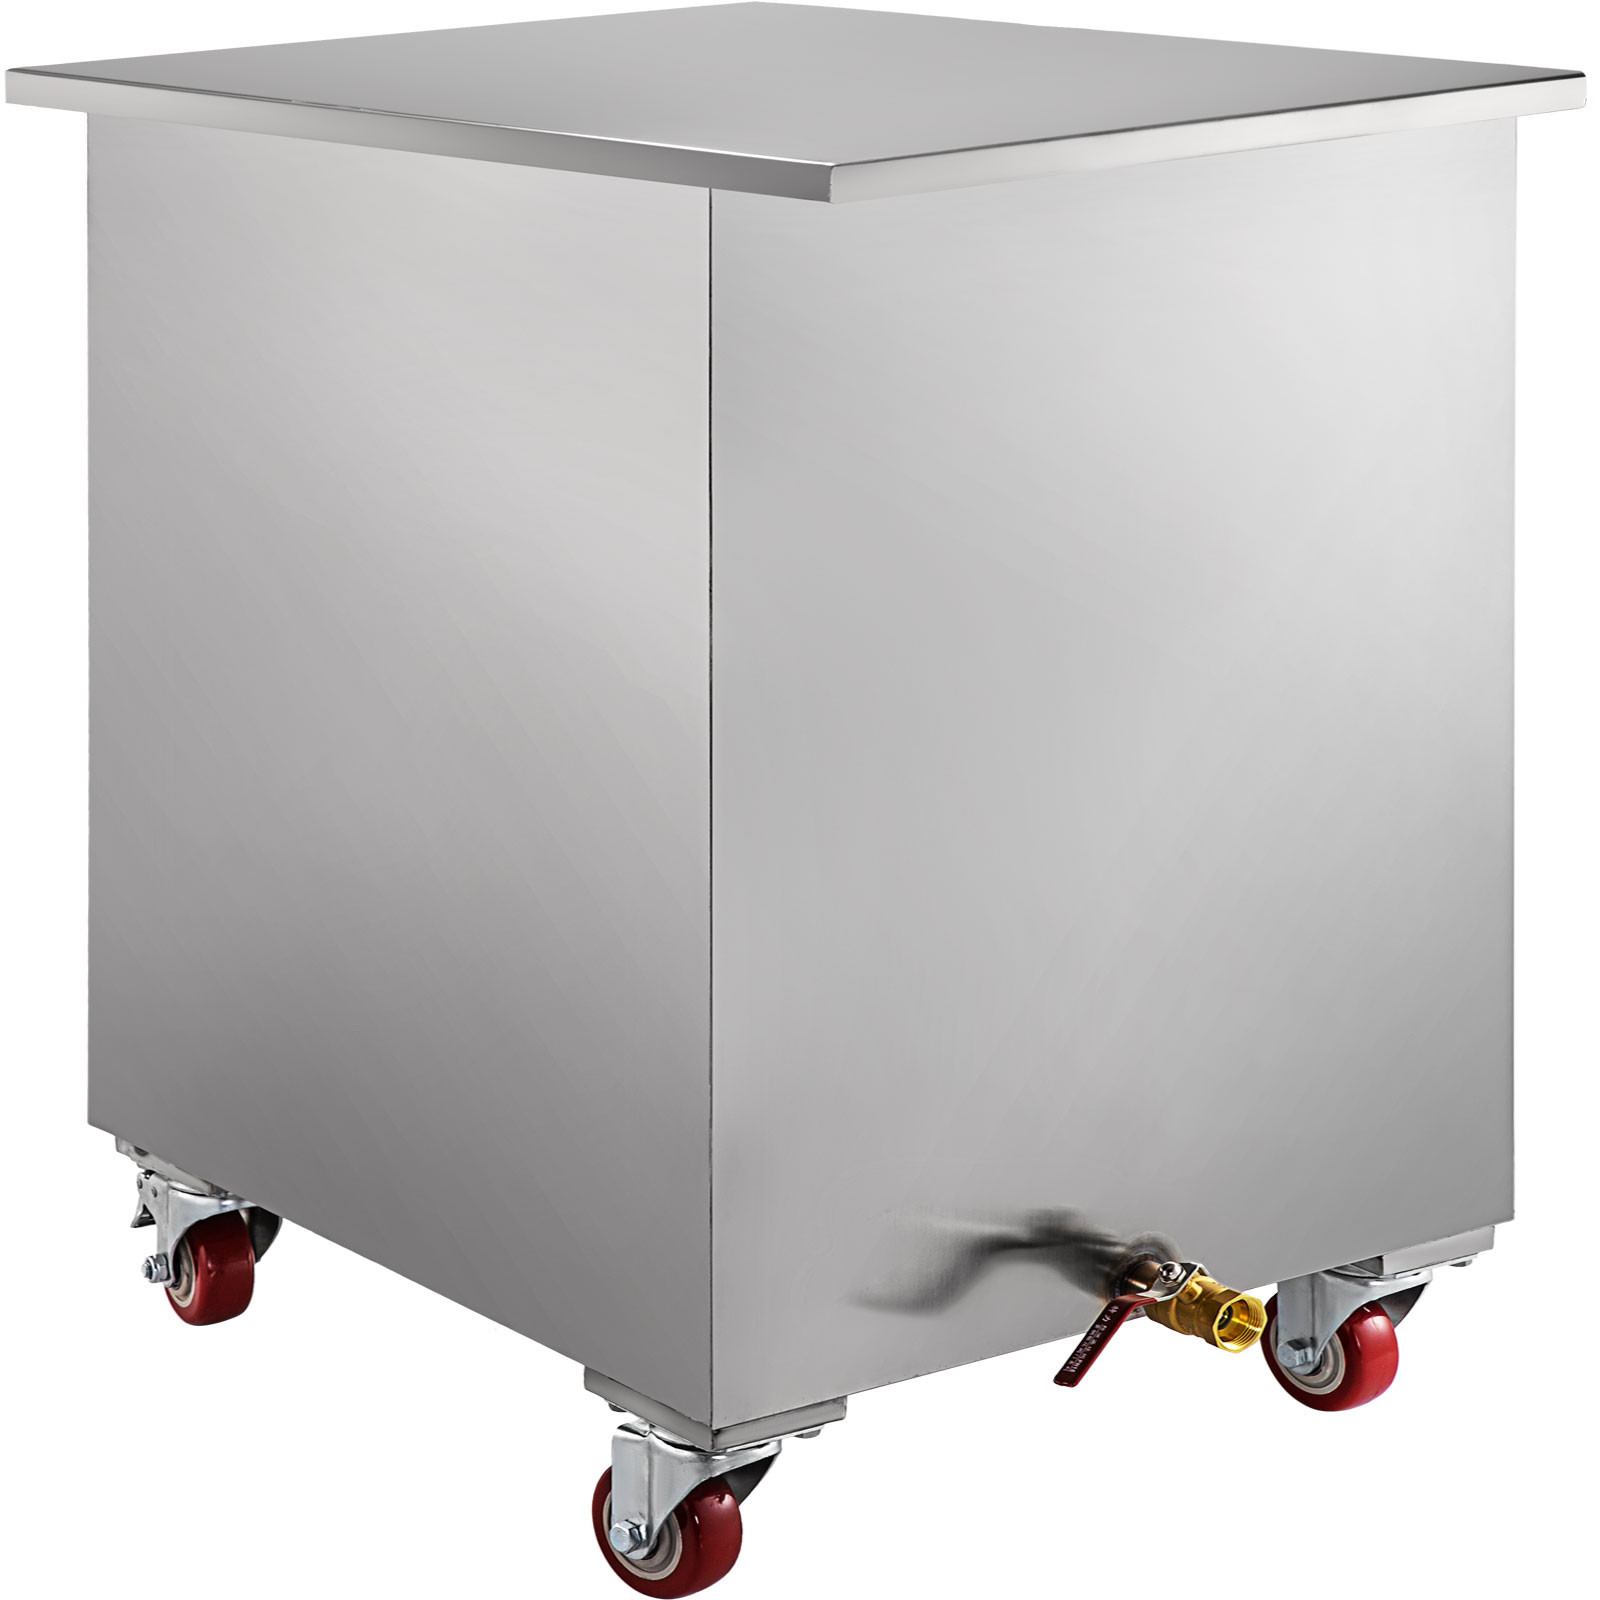 Details about Stainless Steel Commercial Kitchen Hood Grease Filter Soak &  Clean Tank